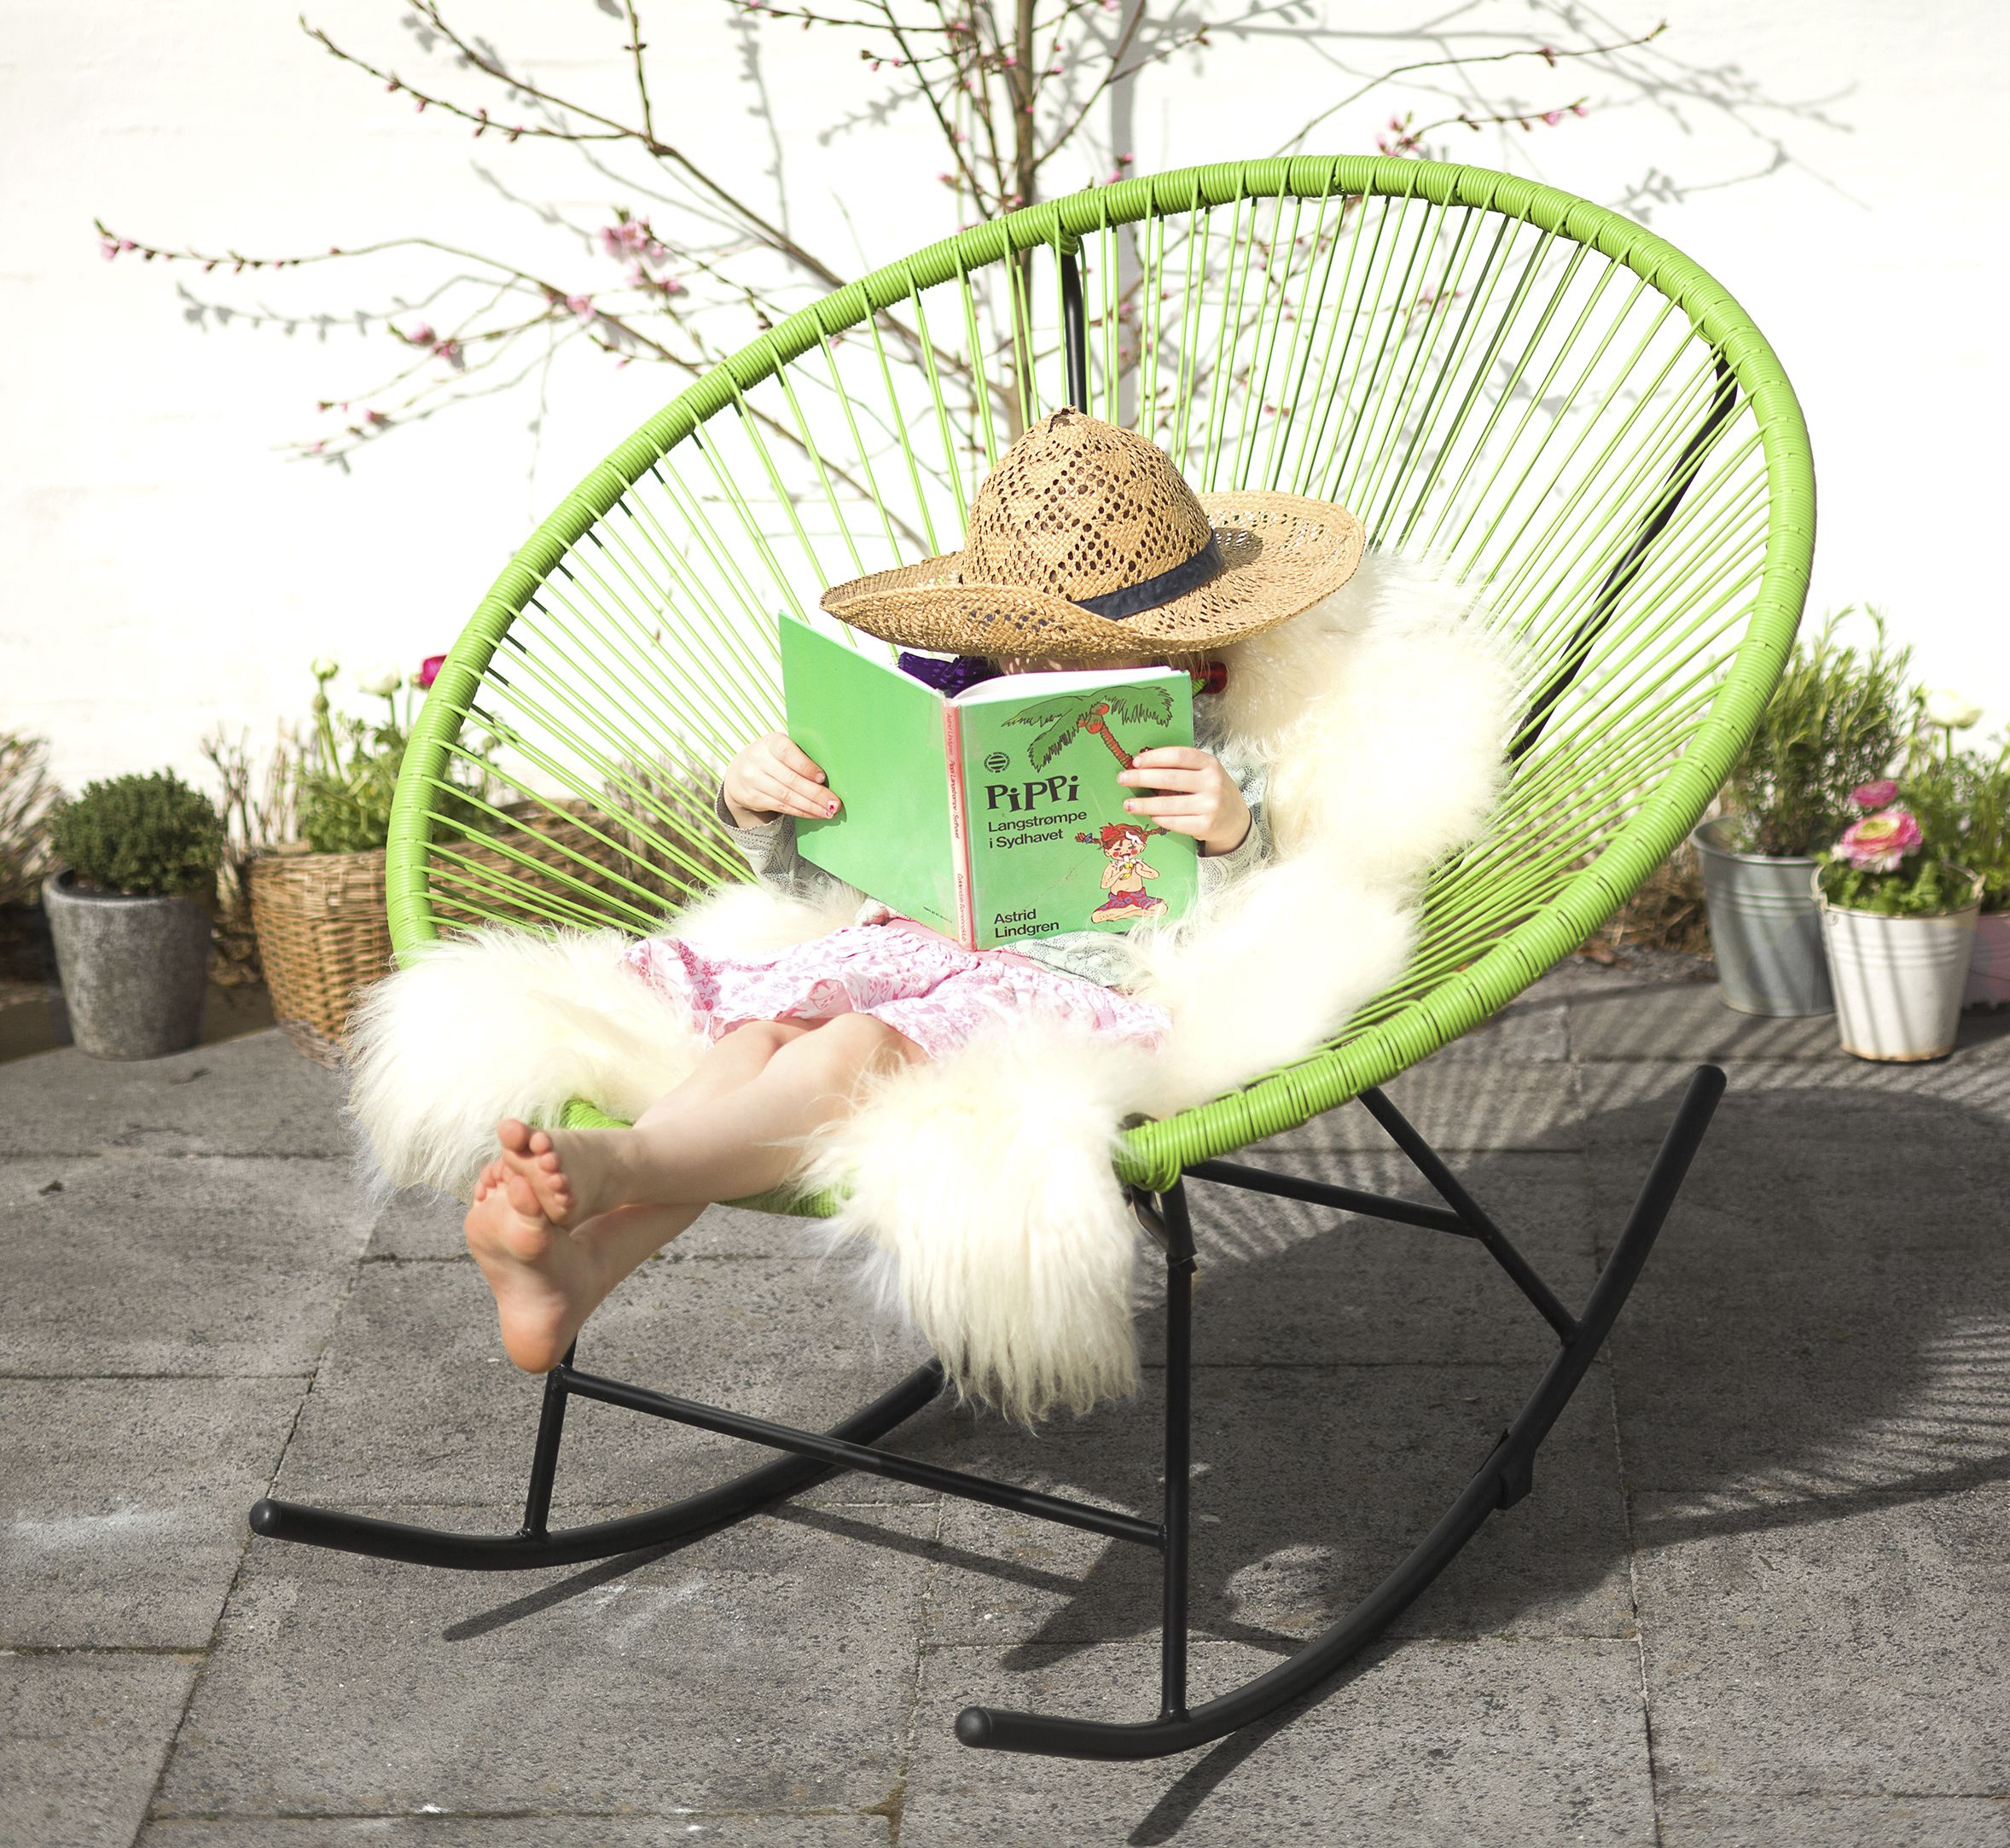 Sun Outdoor Rocking Chair Furniture By Sinnerup Pinterest Outdoor Rocking Chairs Rocking